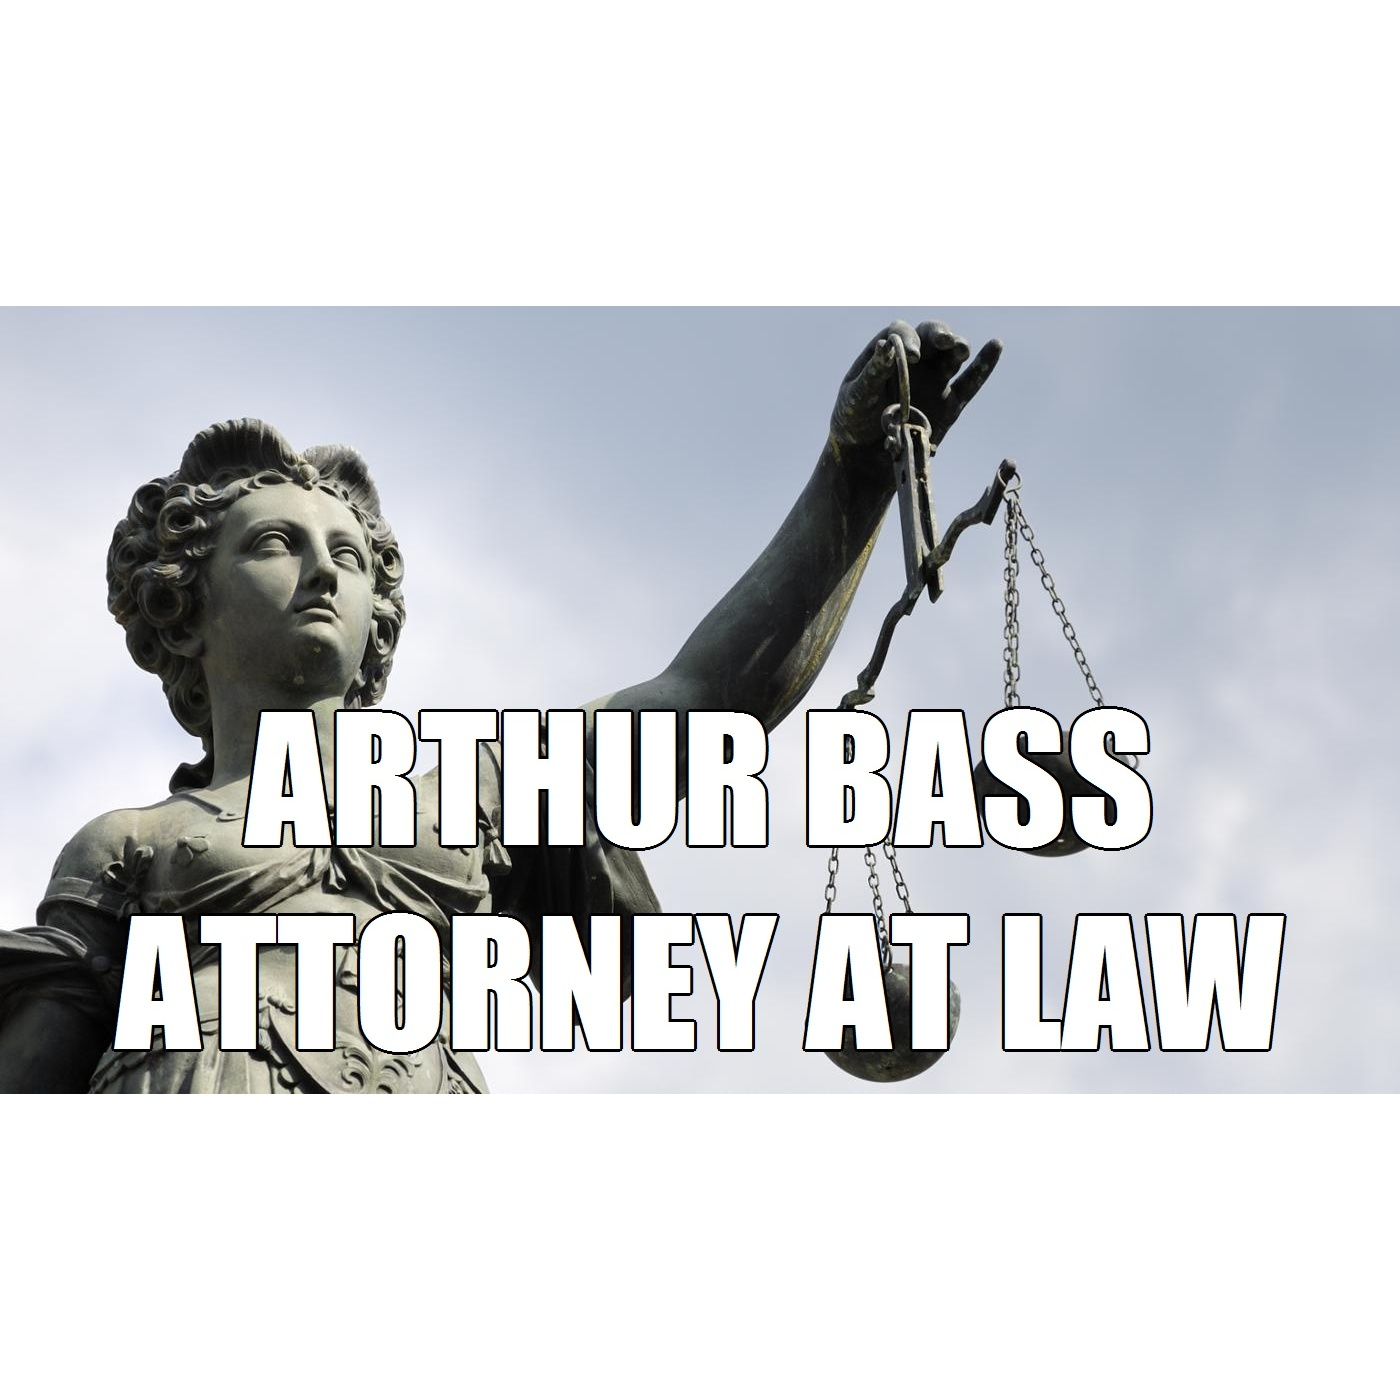 ARTHUR BASS, Attorney at Law - Cleveland, TN 37311 - (423)339-0032 | ShowMeLocal.com